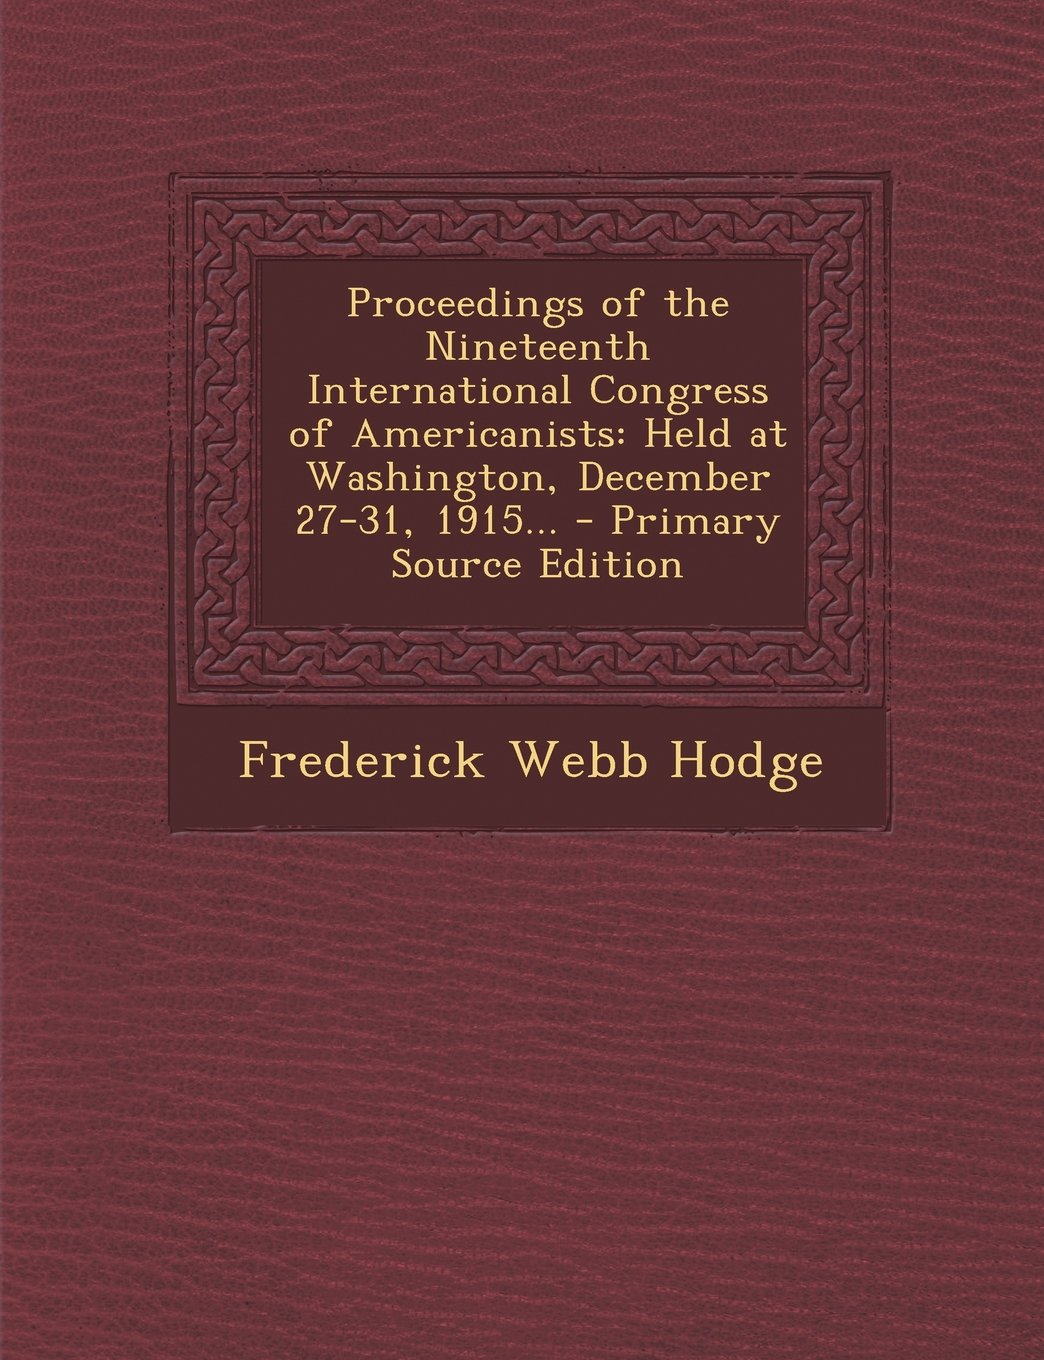 Proceedings of the Nineteenth International Congress of Americanists: Held at Washington, December 27-31, 1915... - Primary Source Edition ebook